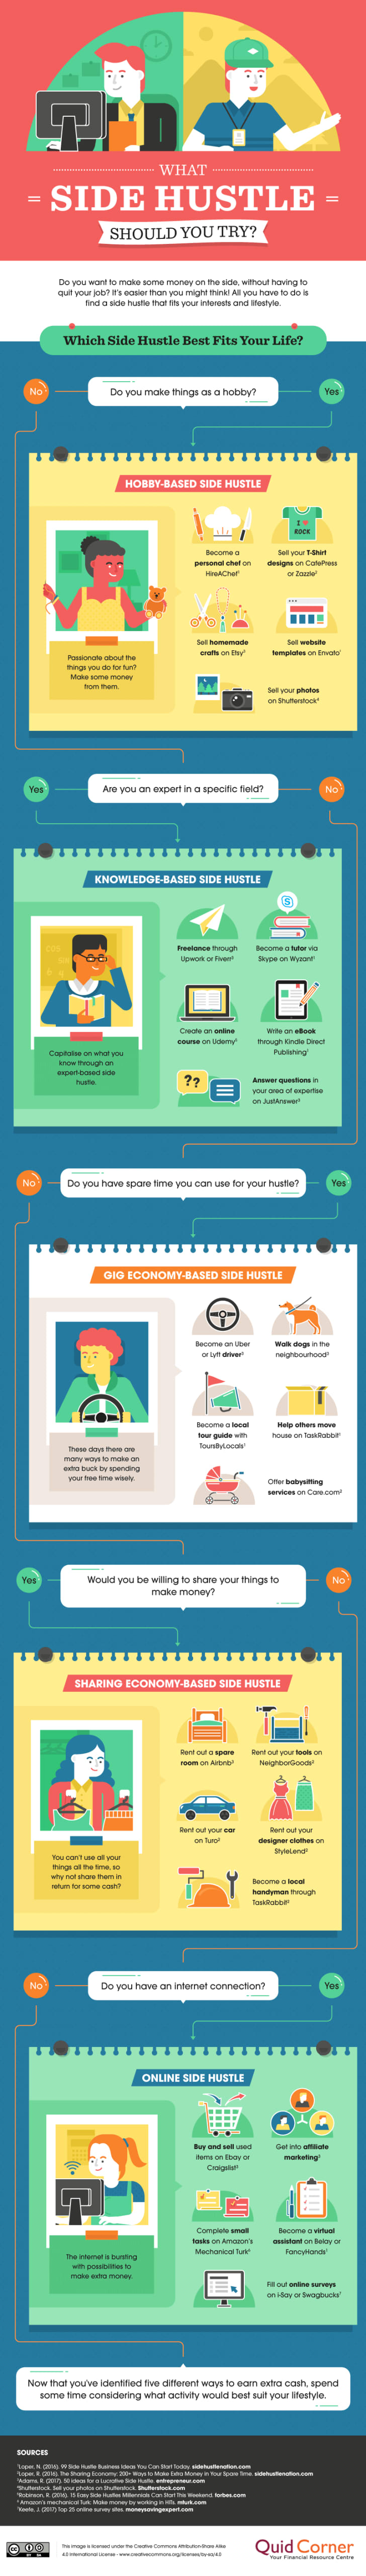 """""""Which Side Hustle Should You Try?"""", an infographic by British financial services company Quid Corner"""